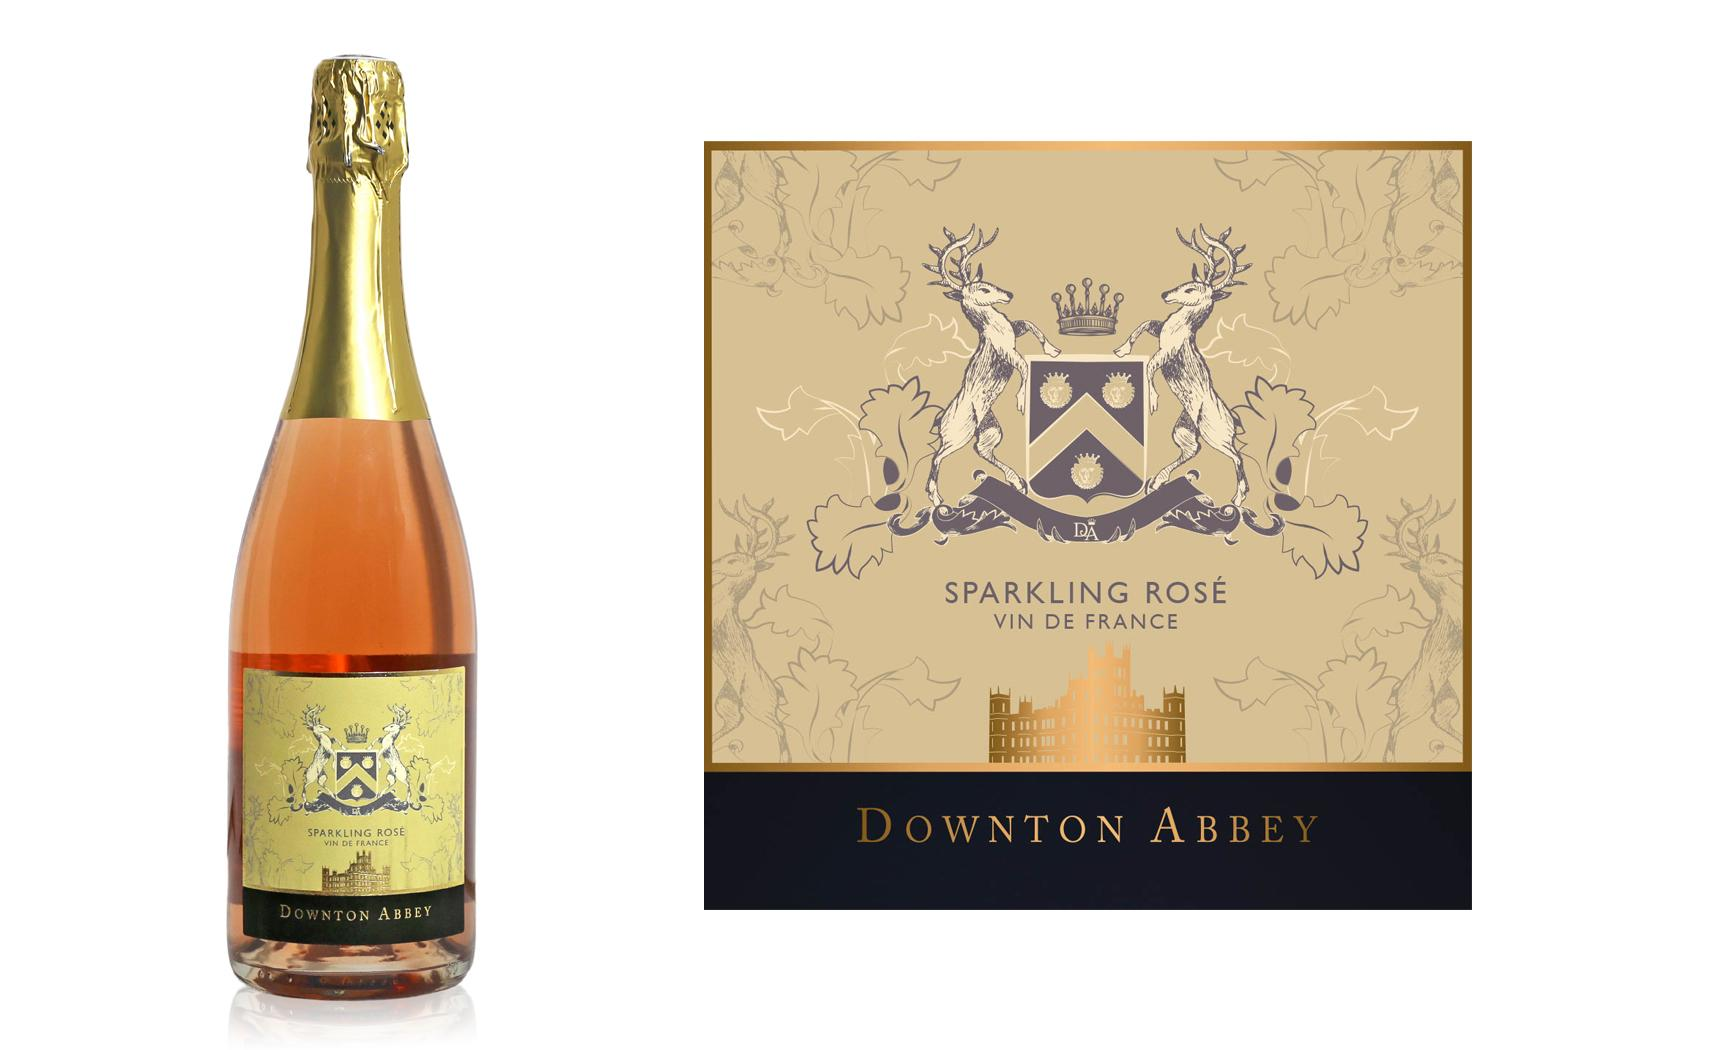 Downton Abbey Sparkling Rose, Val de Loire, France (Photo: Lot18.com)